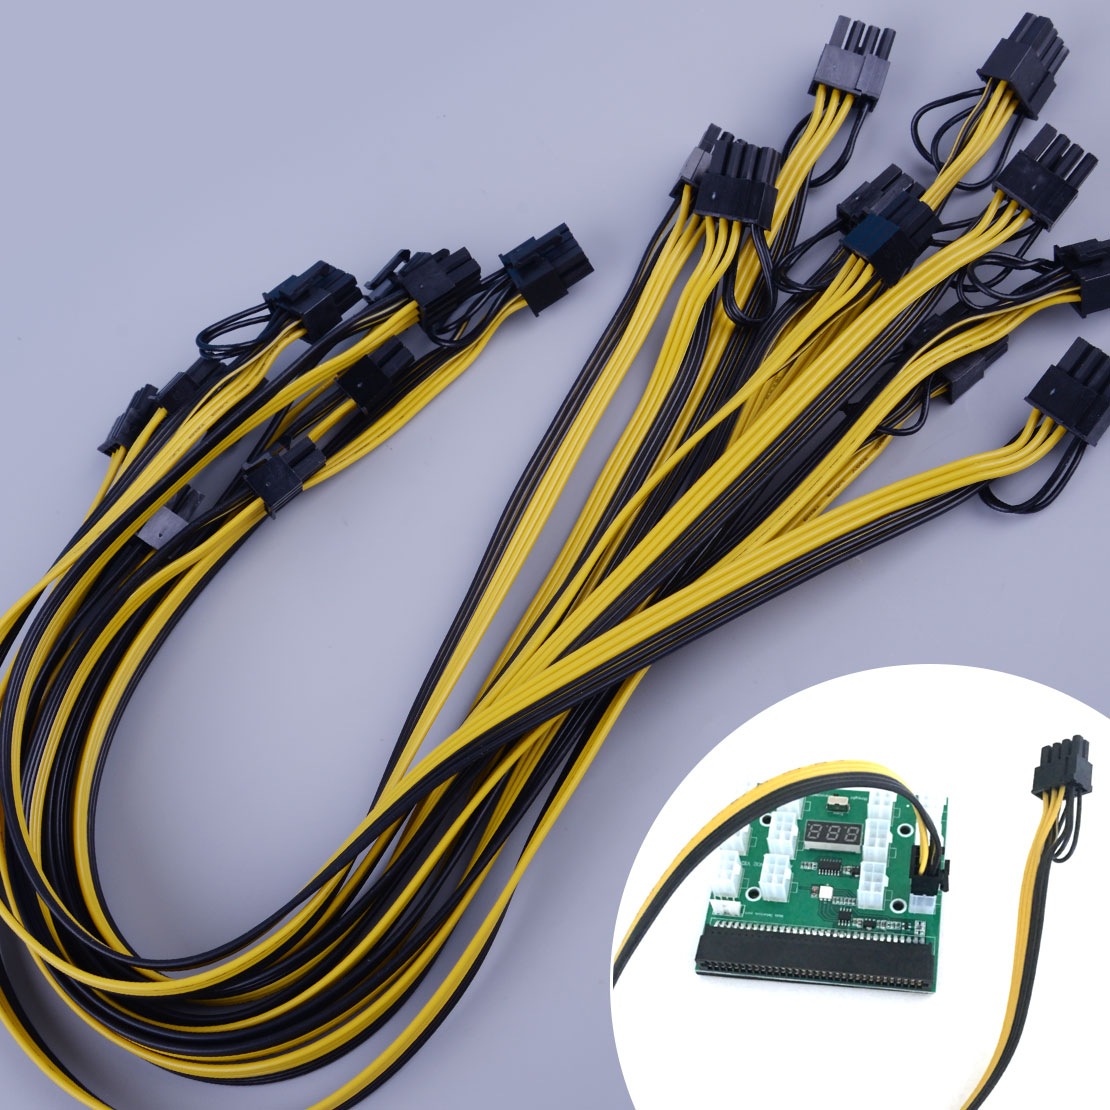 Power Supply Board Adapter Pin Cable Mining Power Supply 6+2 10PCs 6 Pin to 8